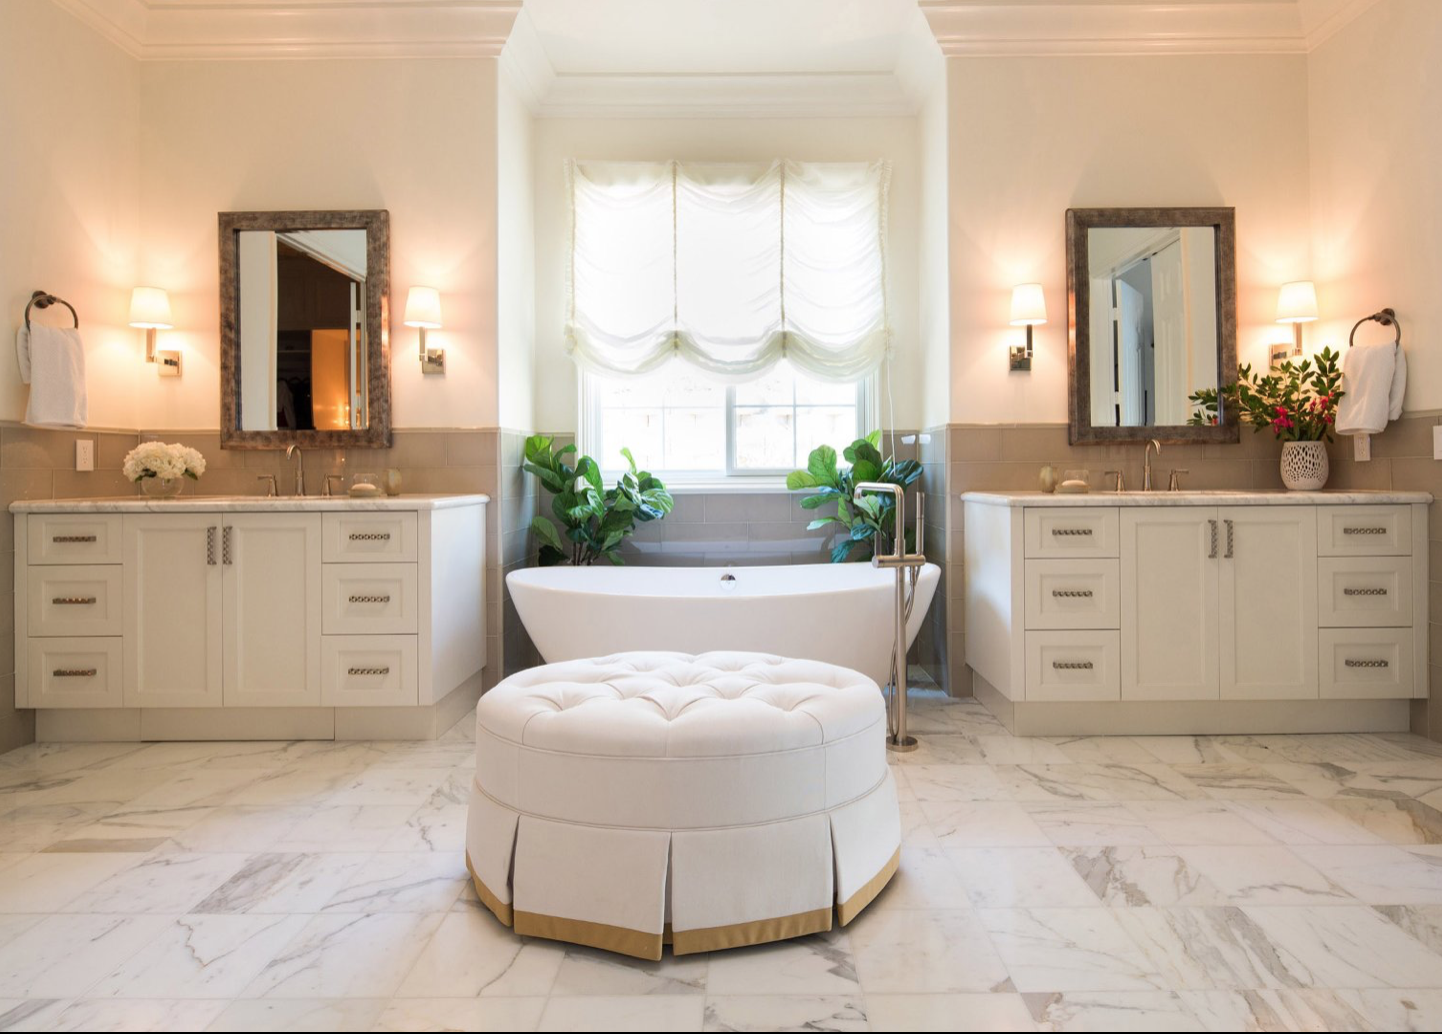 n-glare front-facing (rather than overhead) task lighting on either side of a vanity and overhead skylight windows are great ways to increase brightness in a focused and natural way in your bathroom.